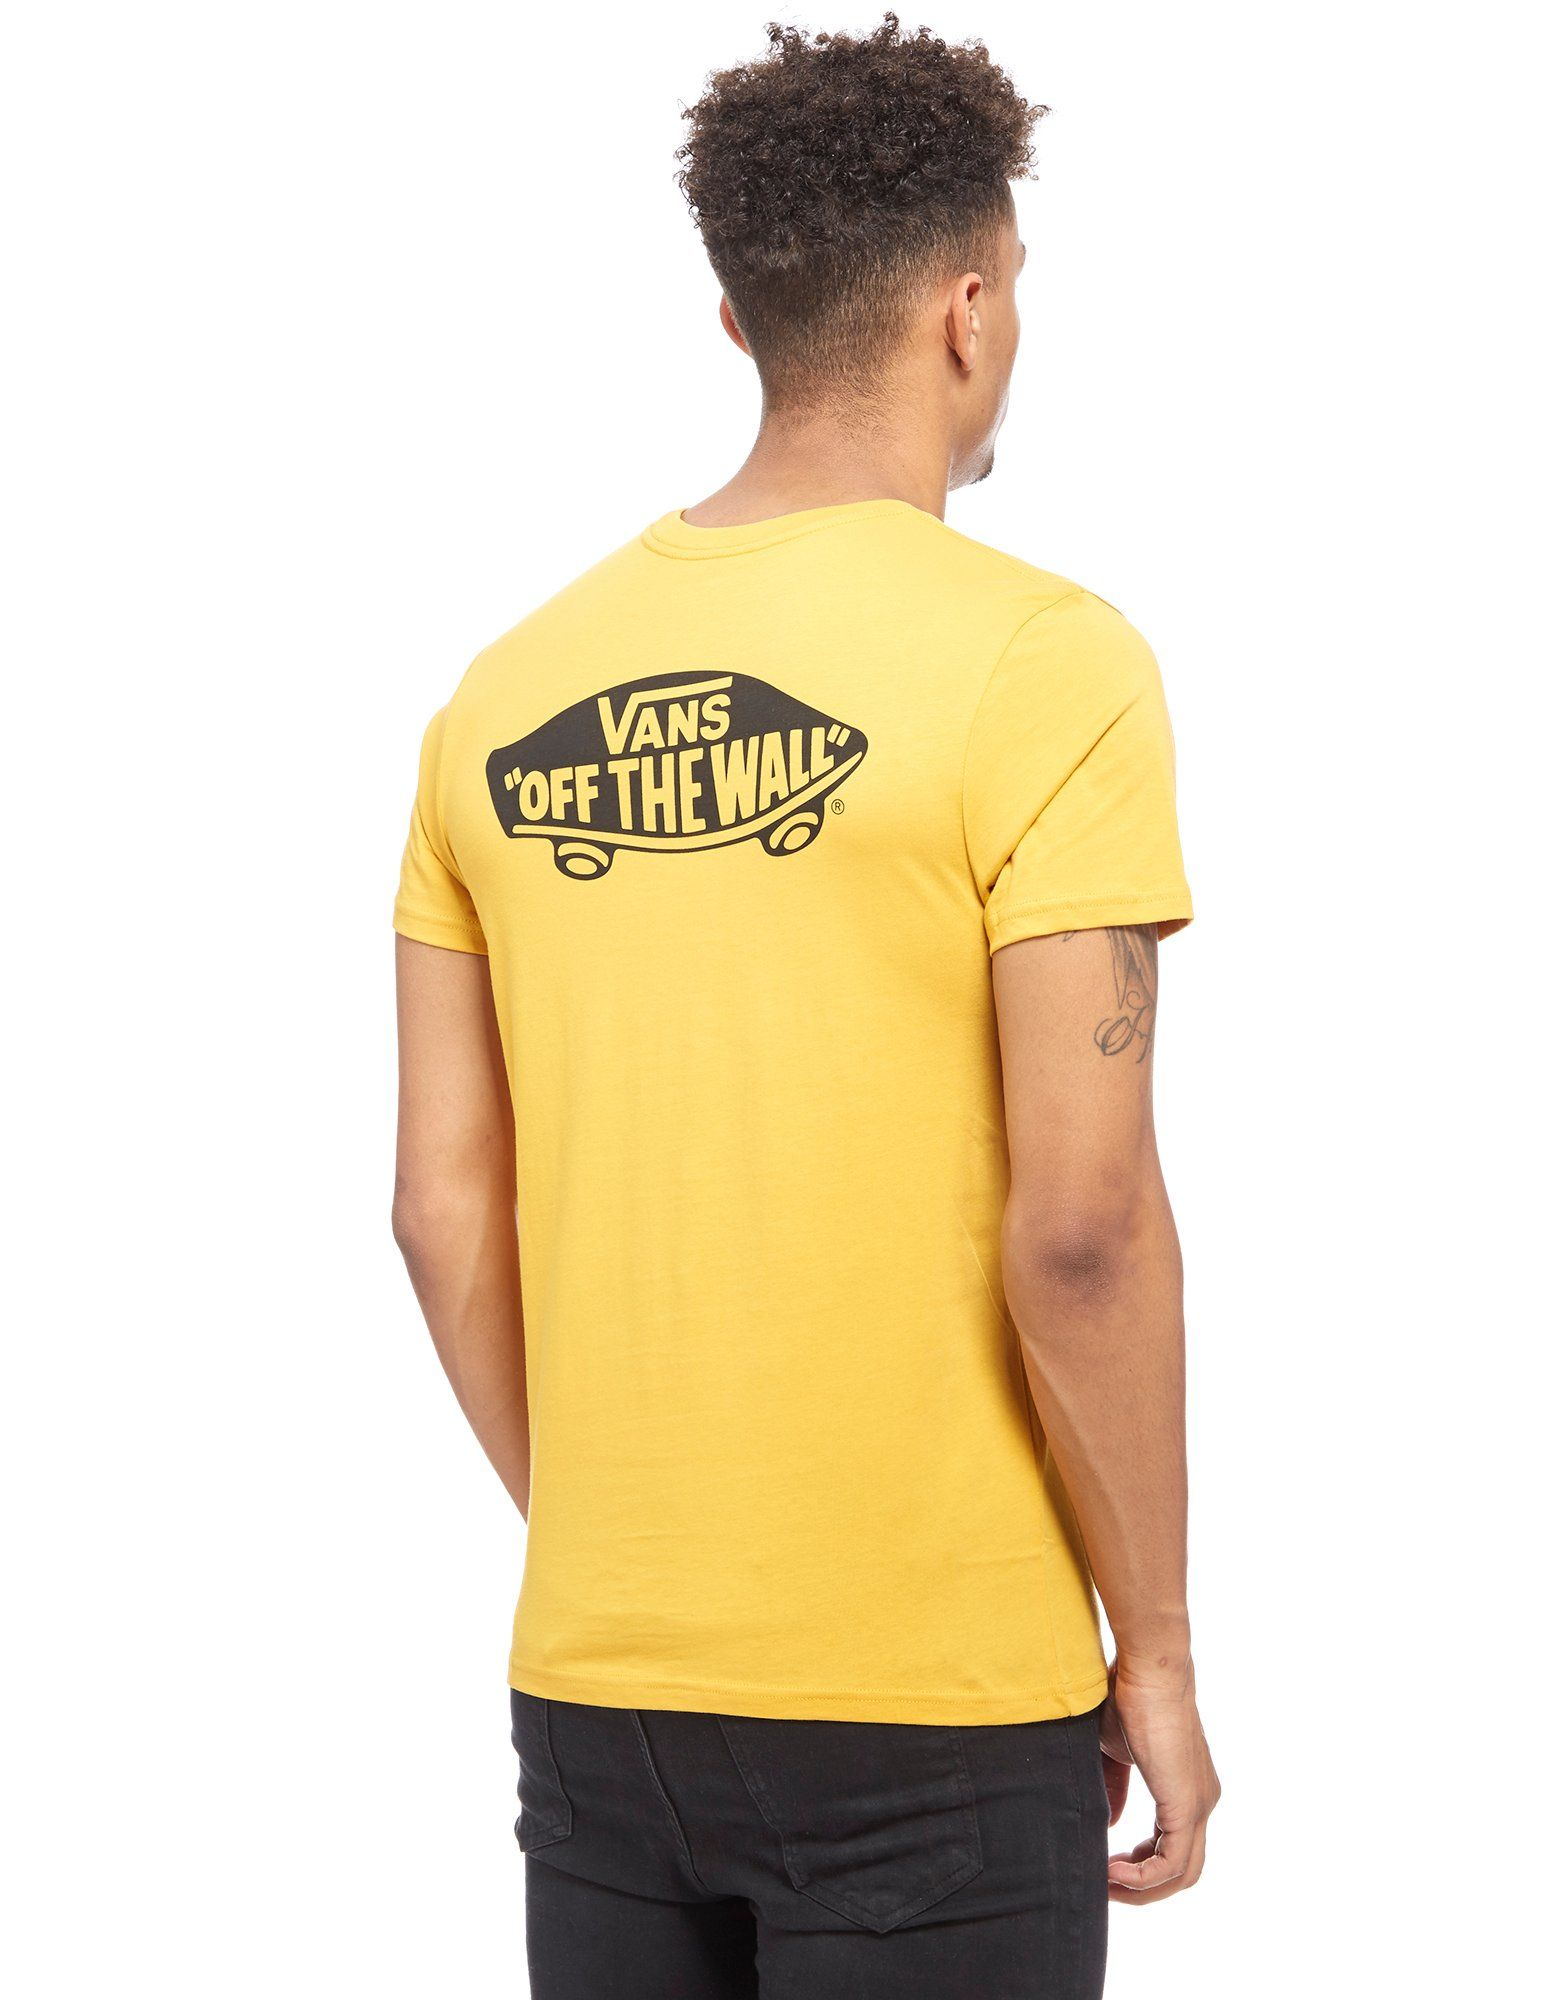 Vans Off The Wall Chest Pocket T-Shirt